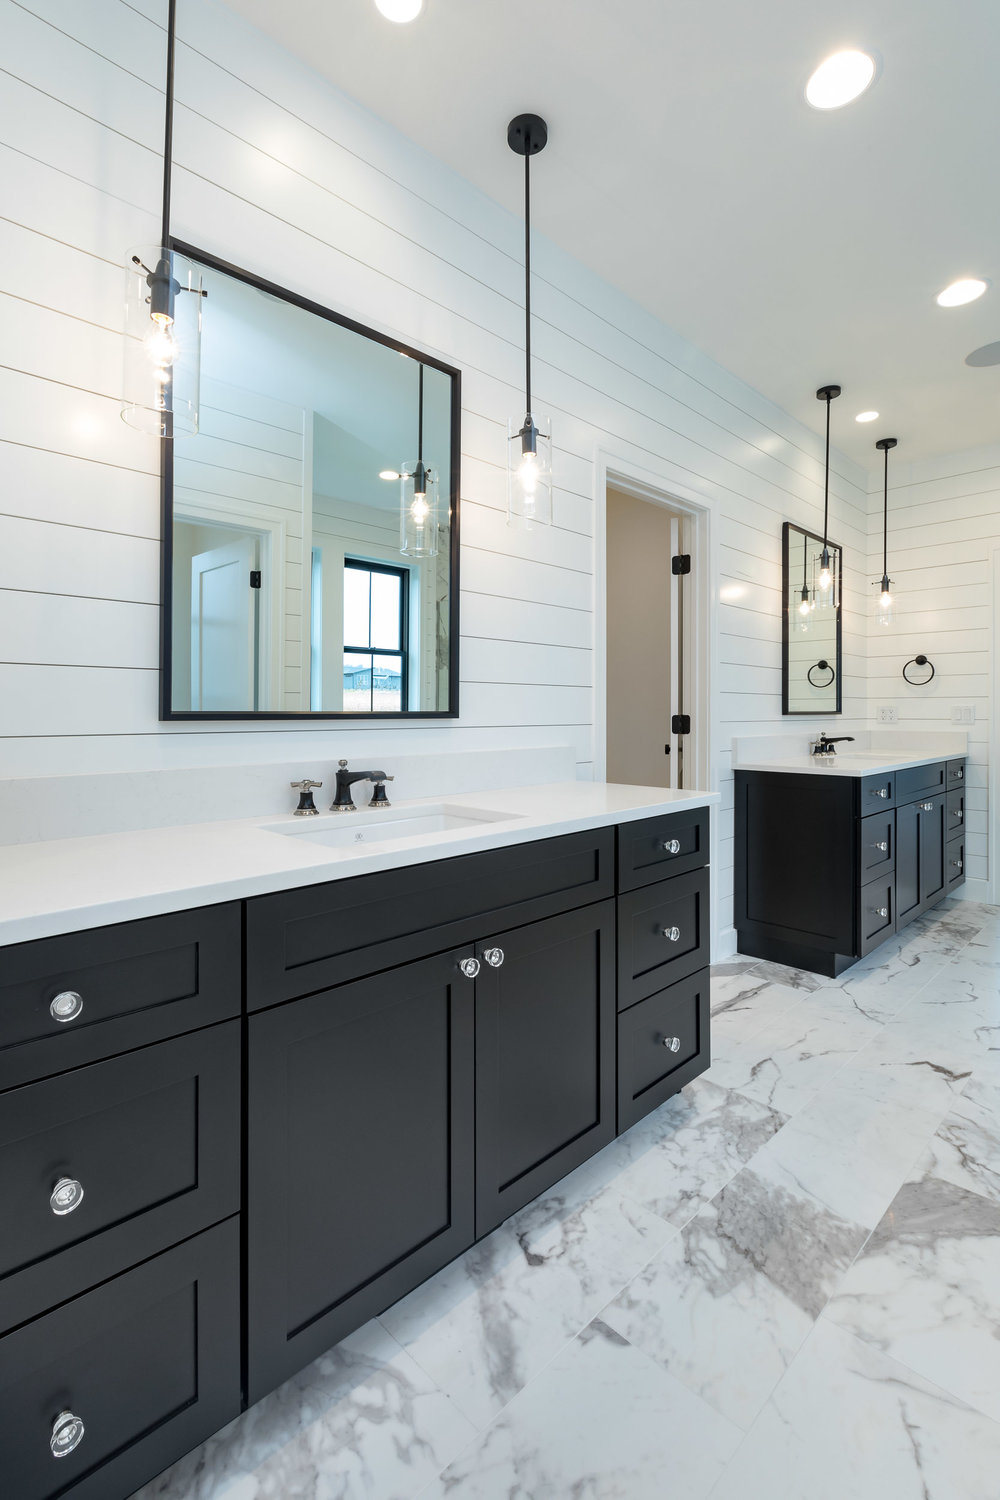 beyond-the-box-panted-cabinets-11.jpg